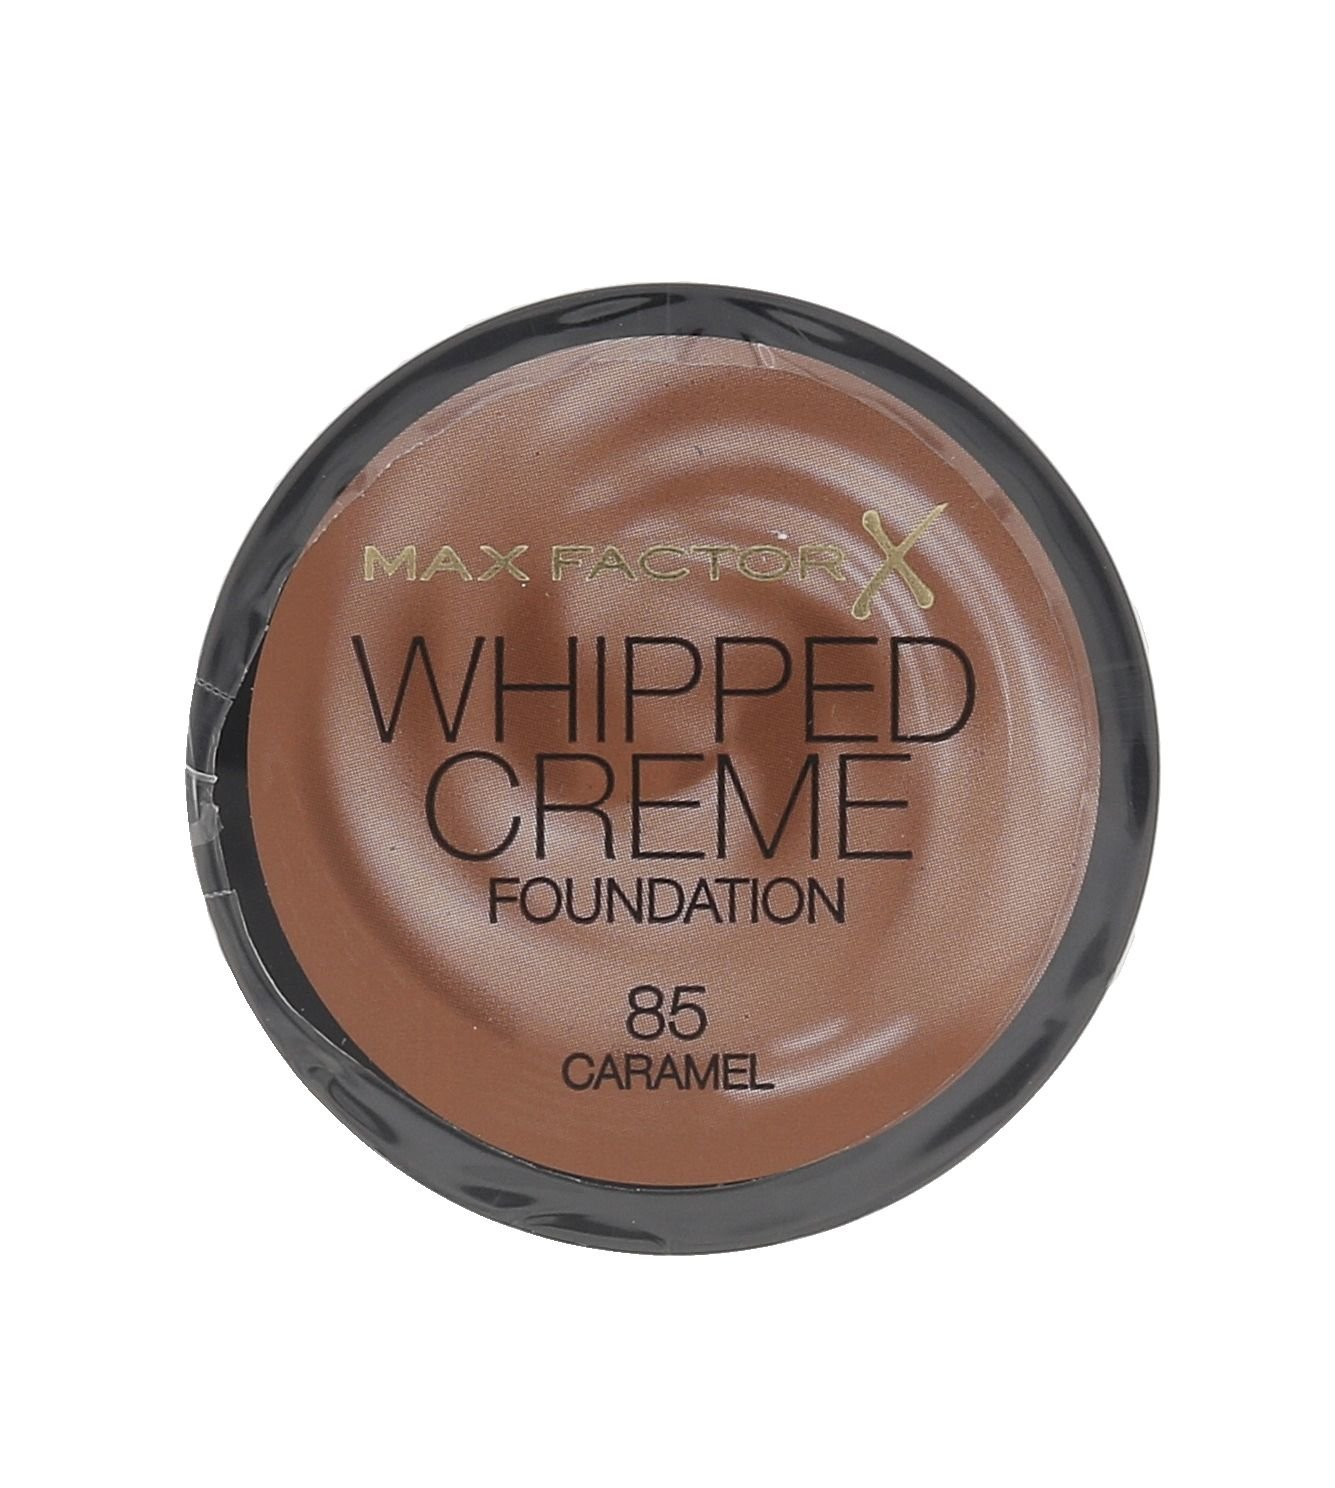 Max Factor Whipped Creme Cosmetic 18ml 85 Caramel